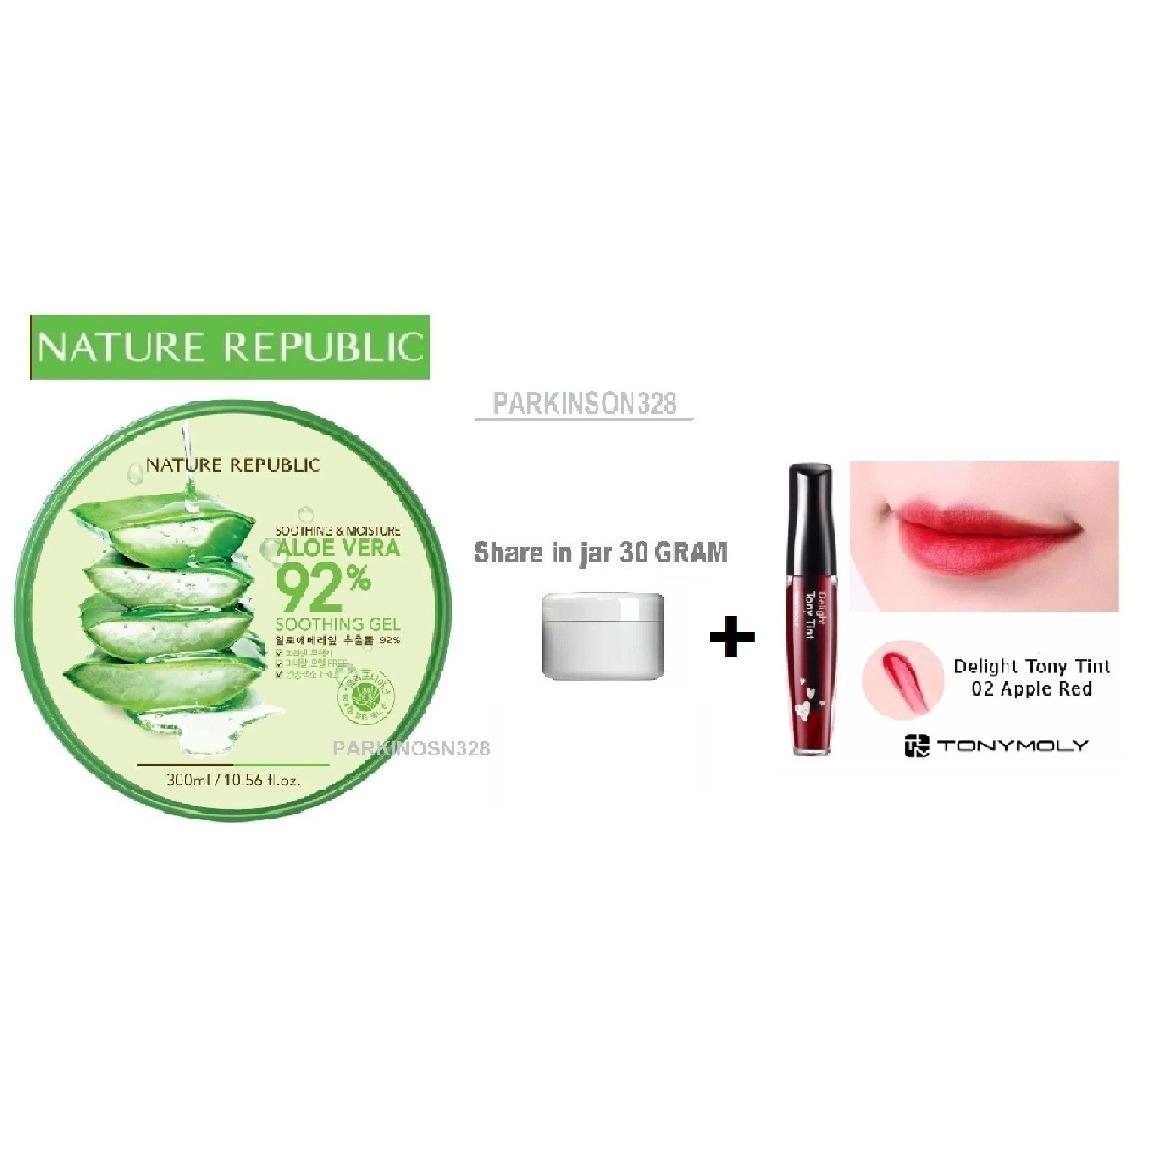 Harga Nature Republic Soothing Moisture Aloe Vera 92 Gel Original Korea Share In Jar 30 Gram Tony Moly Delight Tint Original 02 Apple Red 1 Buah Free Packing Bubble Wrap Asli